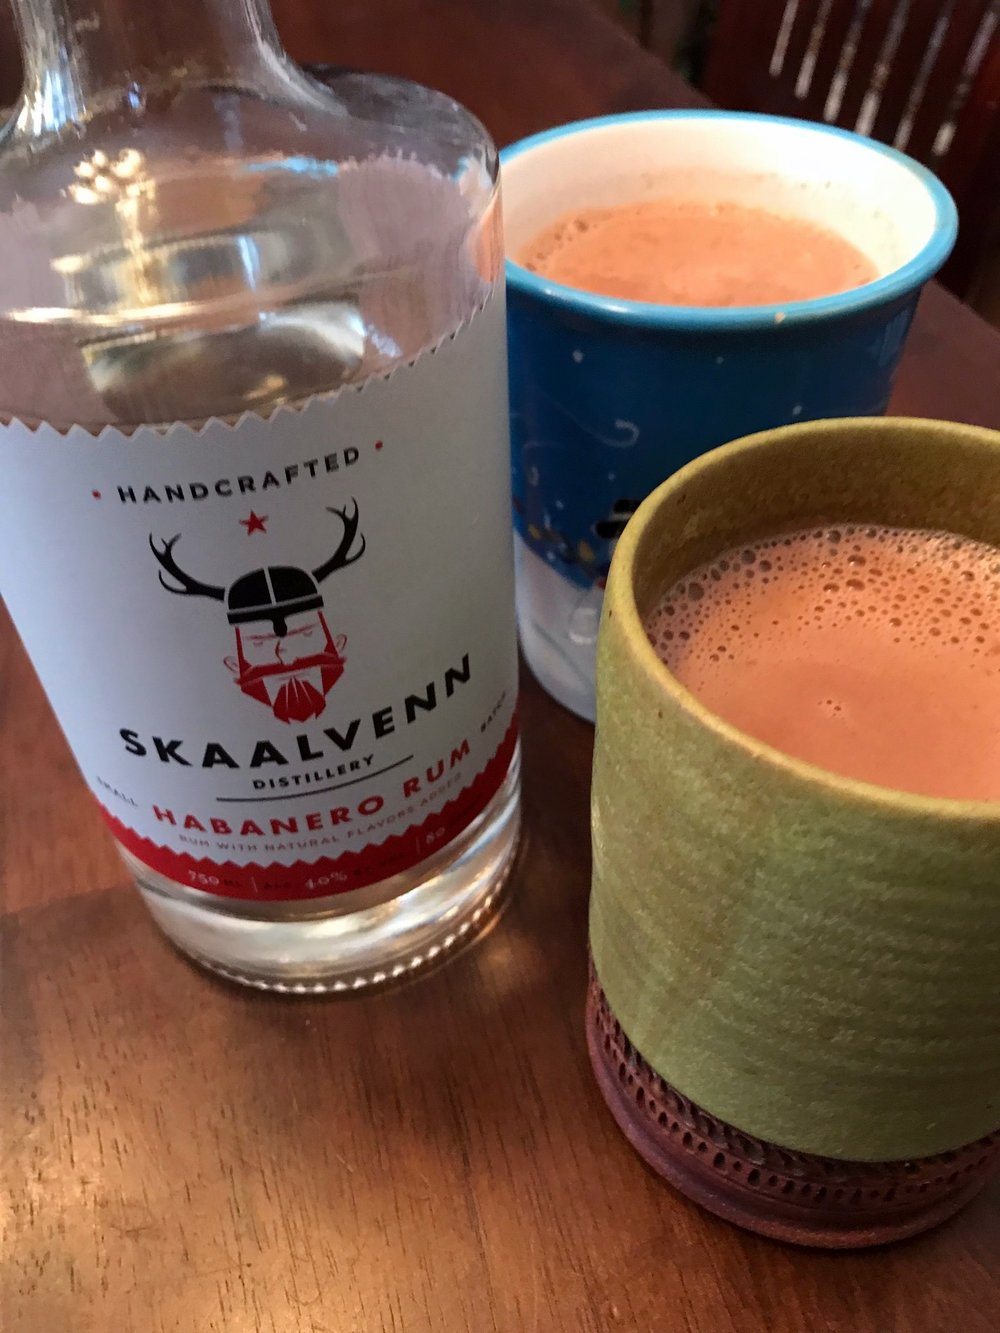 Skaalvenn Habanero Rum is great in hot chocolate!